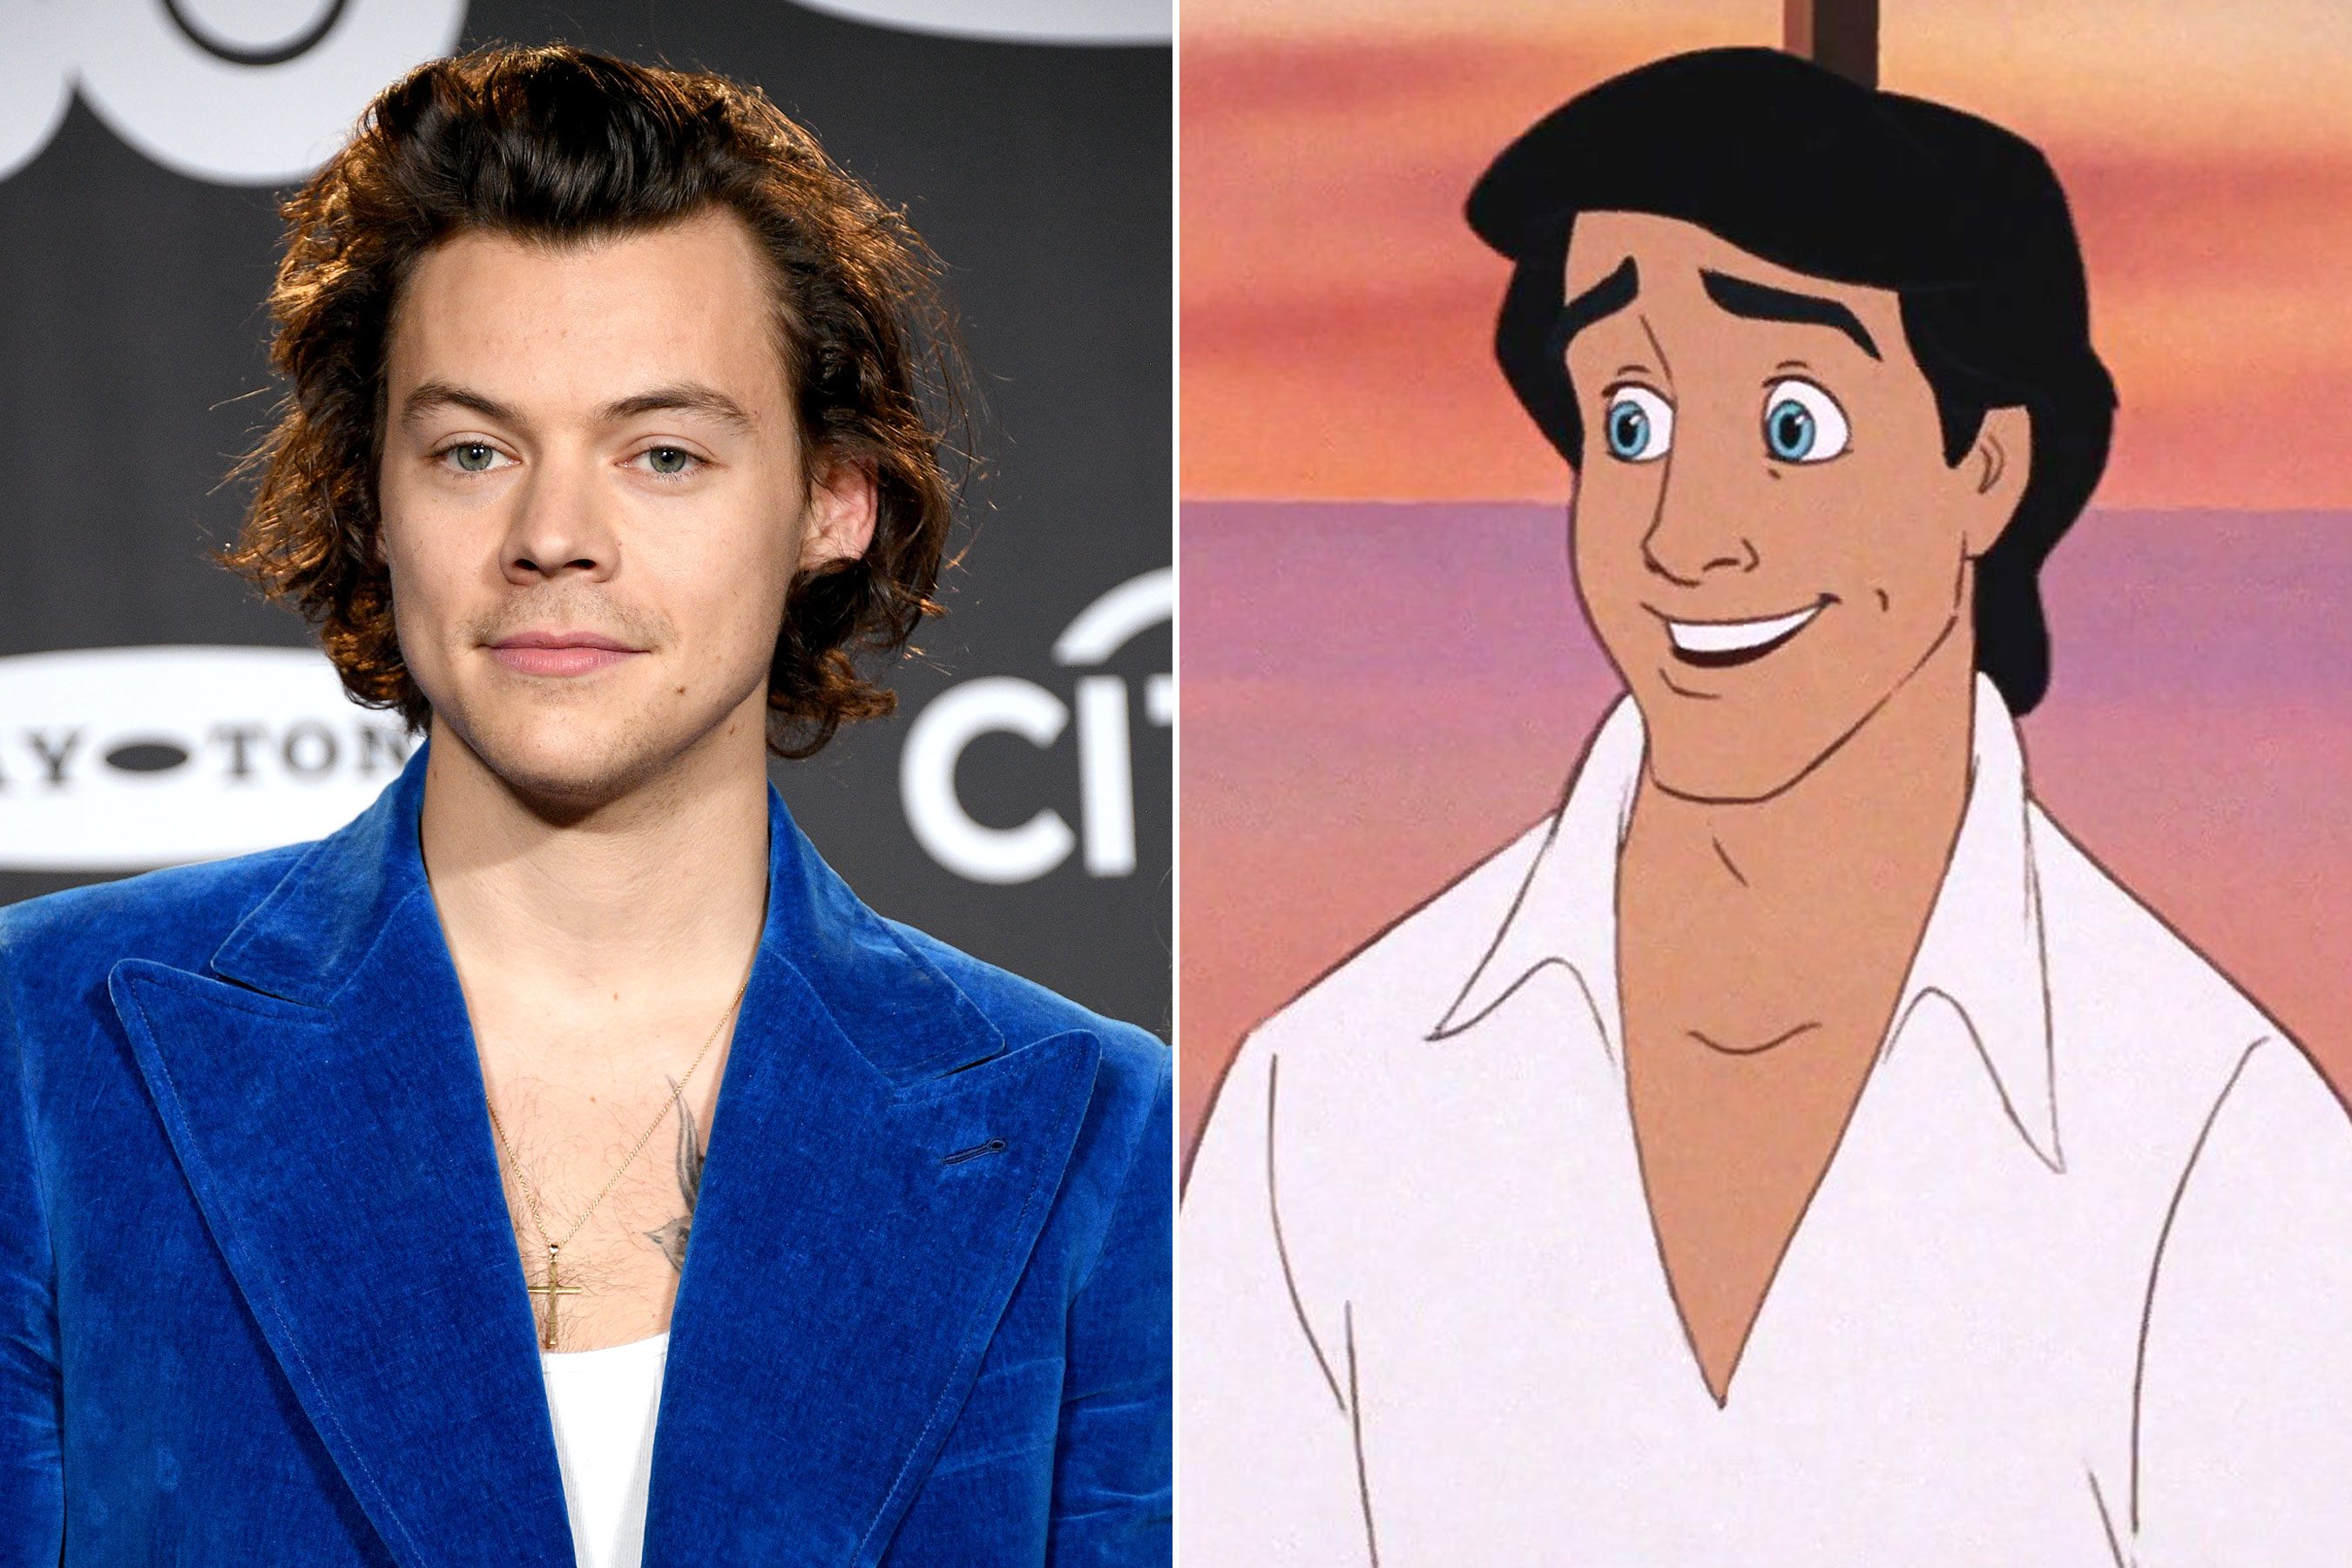 Harry Styles turns down Prince Eric role in ' The Little Mermaid' live-action